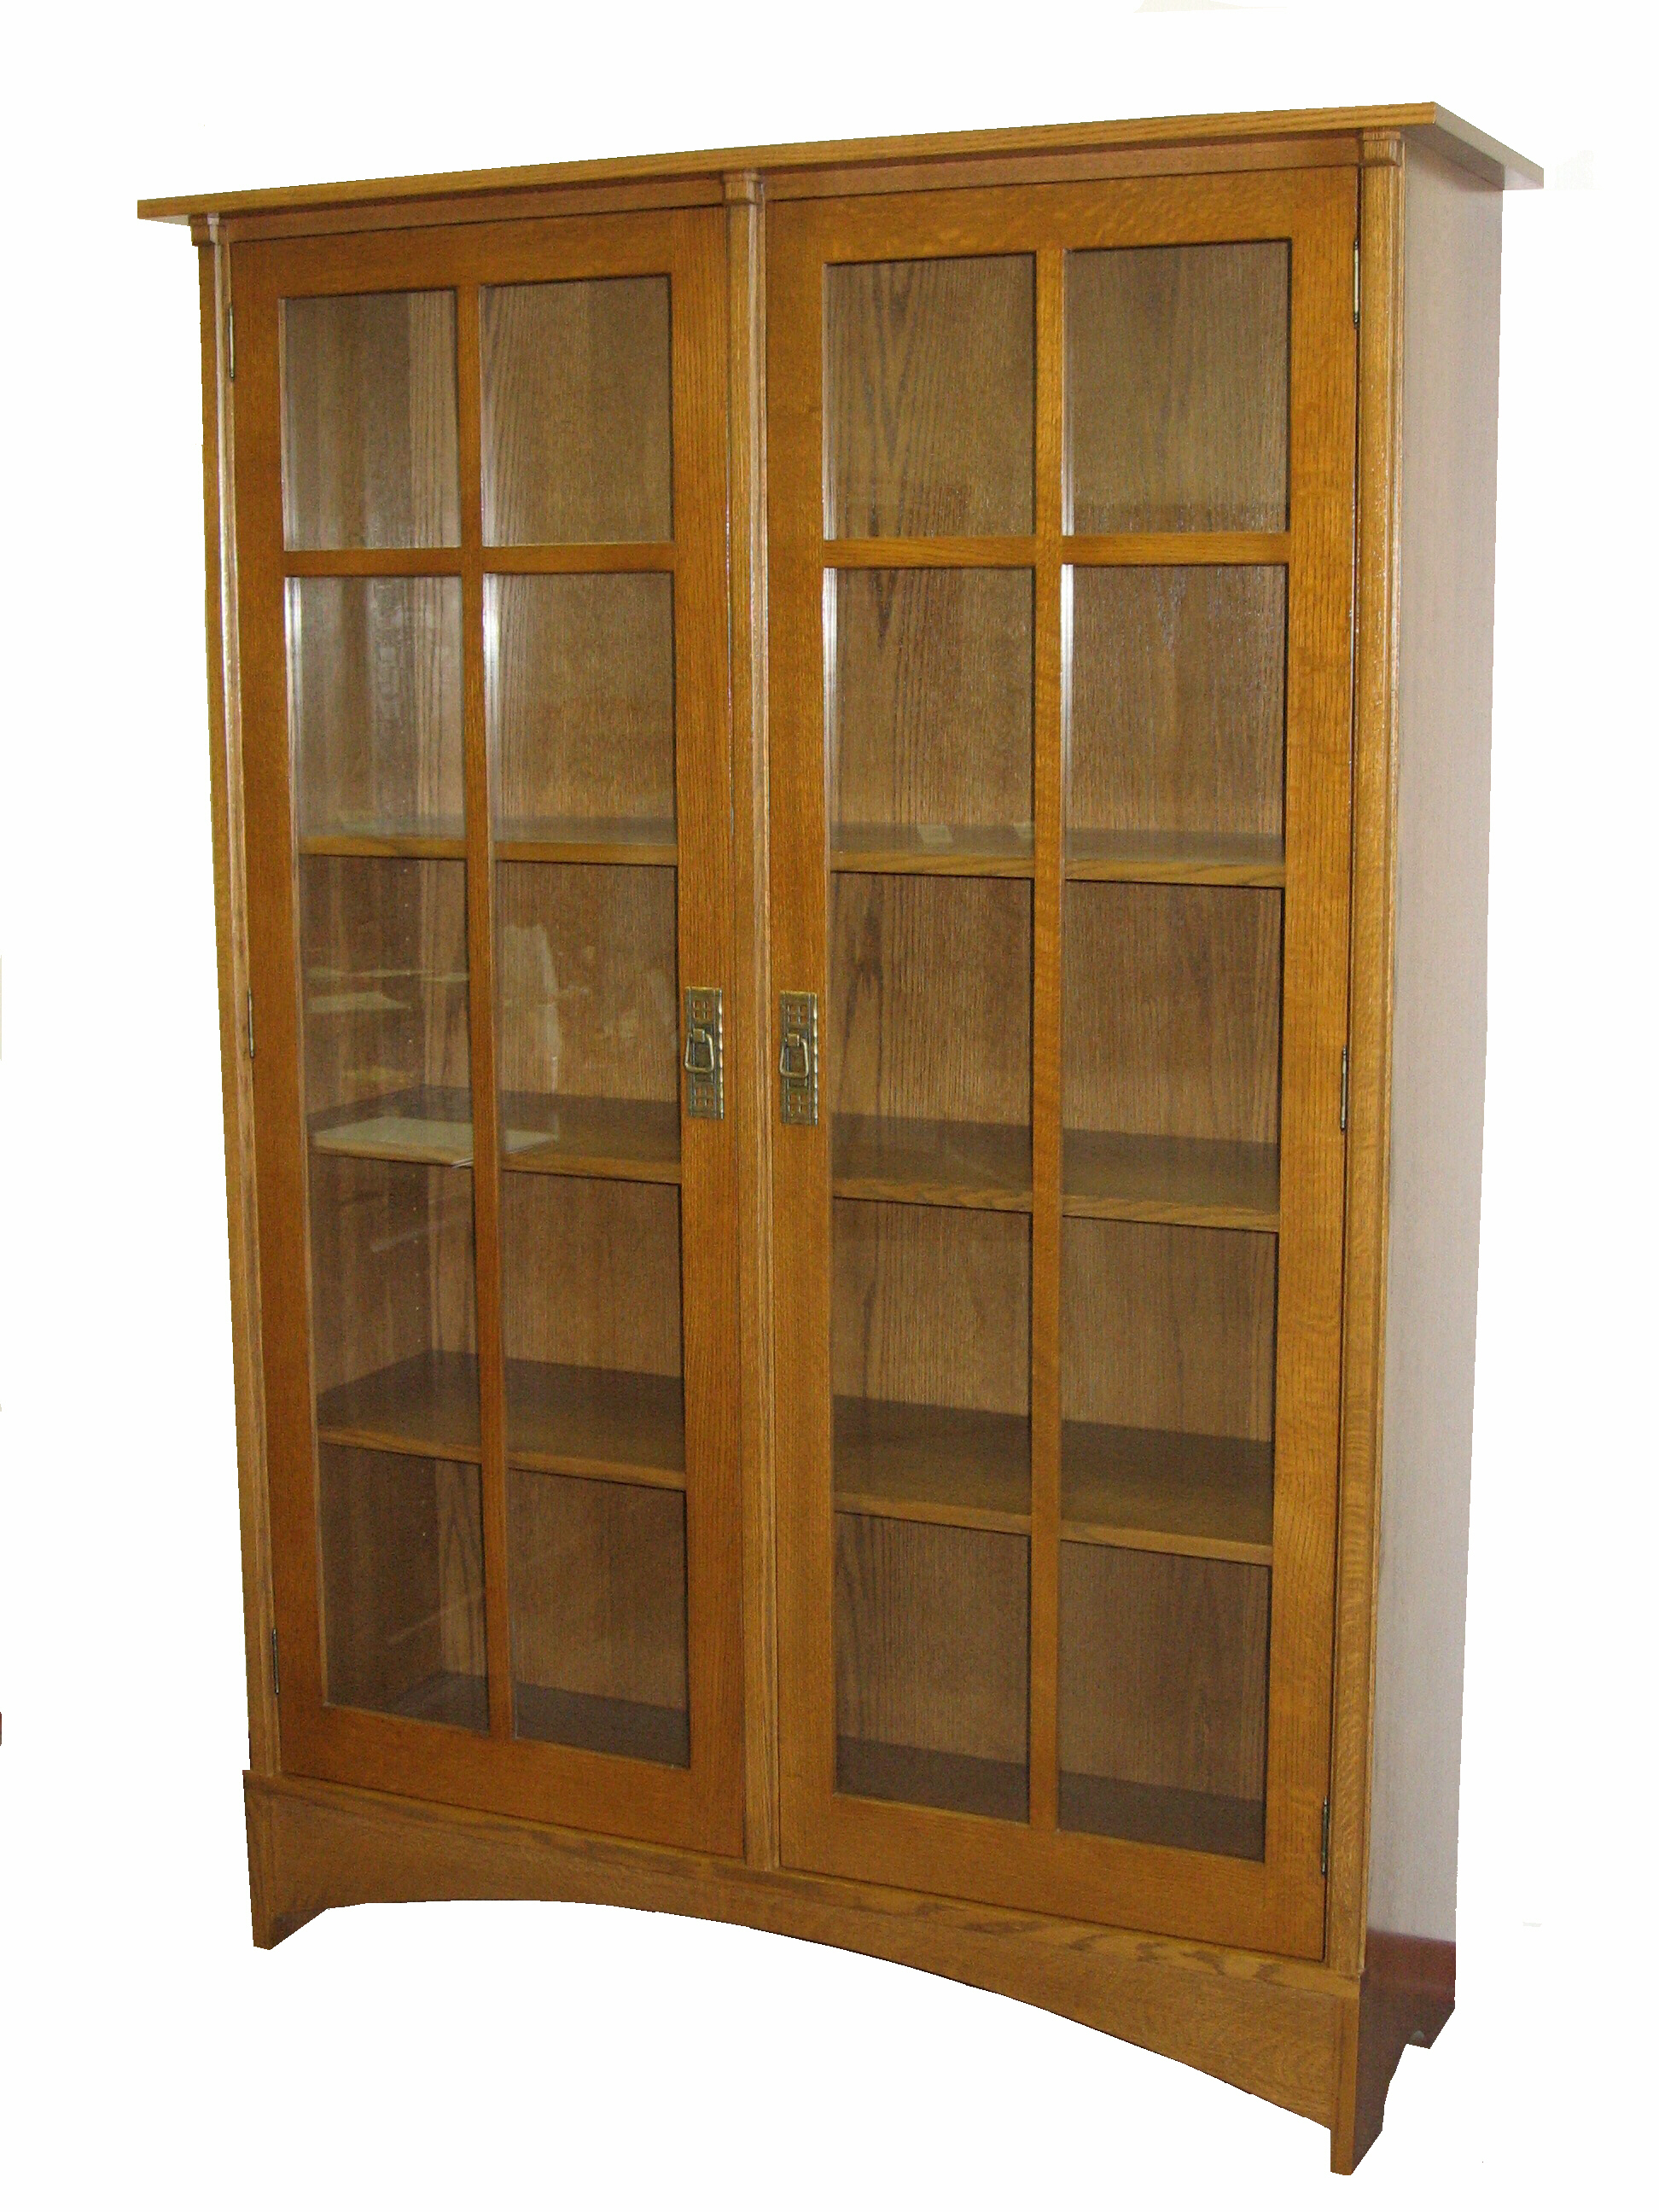 arts-and-crafts-stickley-style-display-china-cabinet.JPG